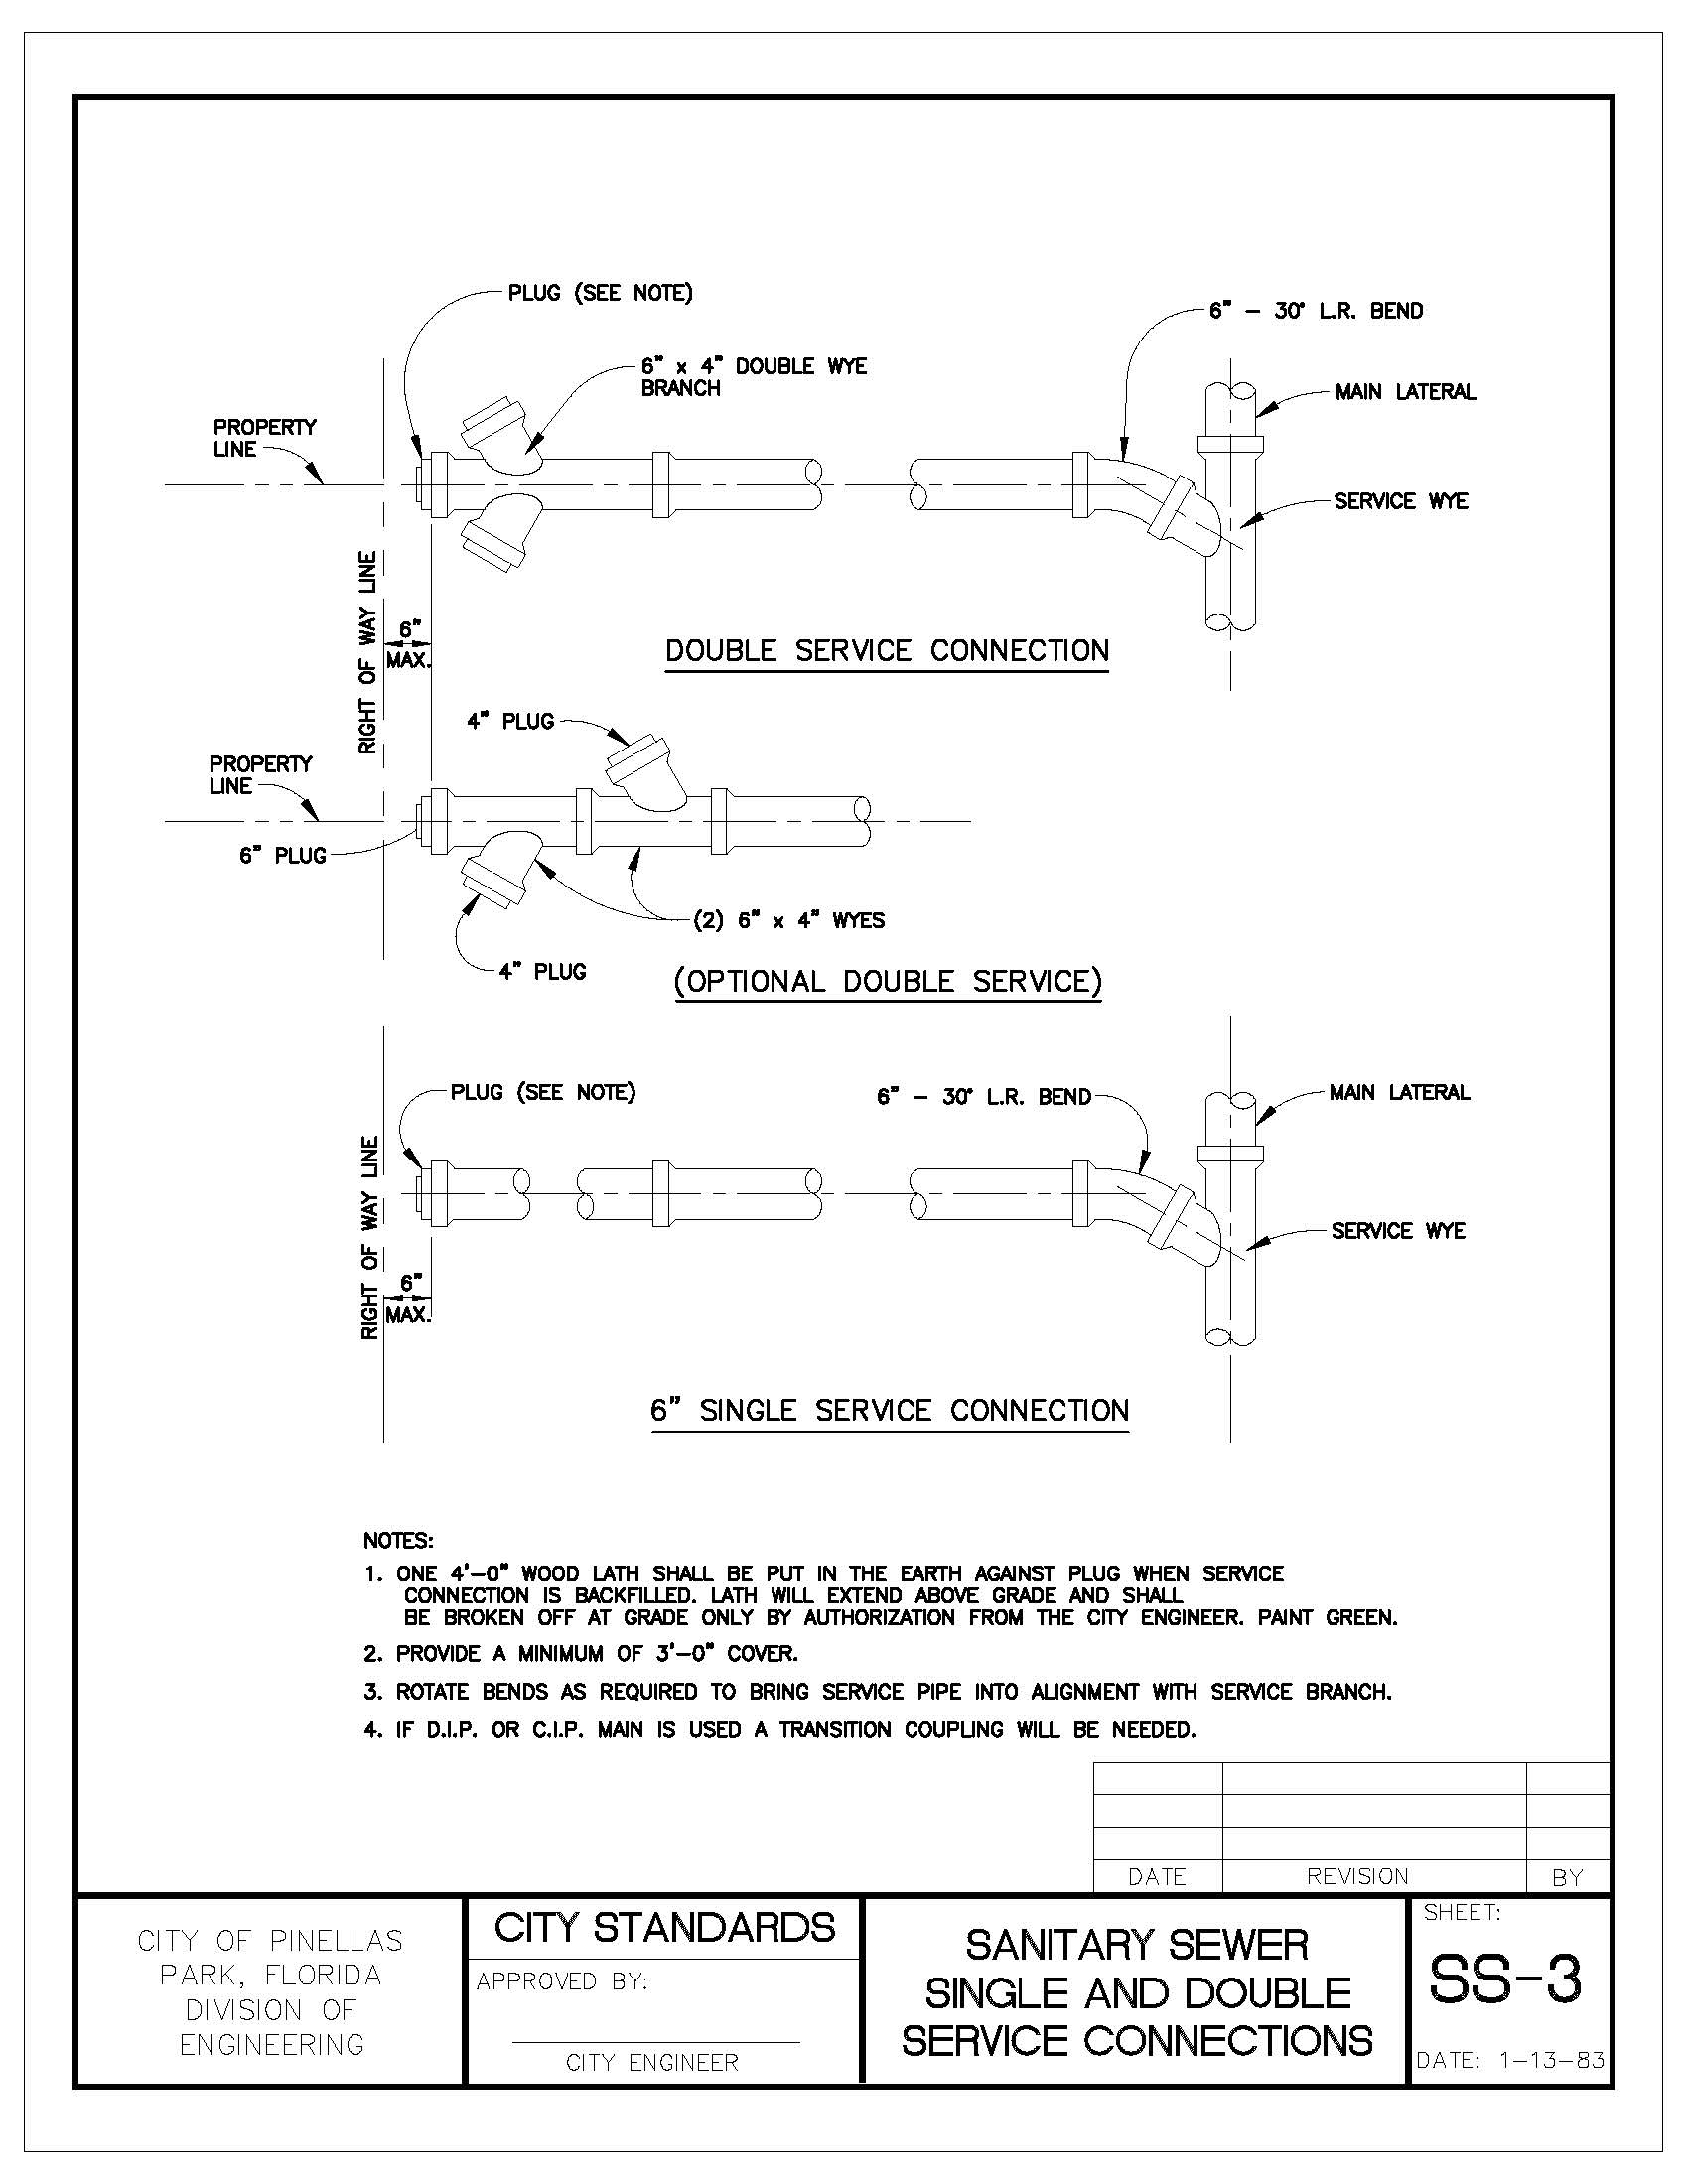 Engineering Manual v5_201908121127291138_Page_067 sanitary sewer single and double service connections